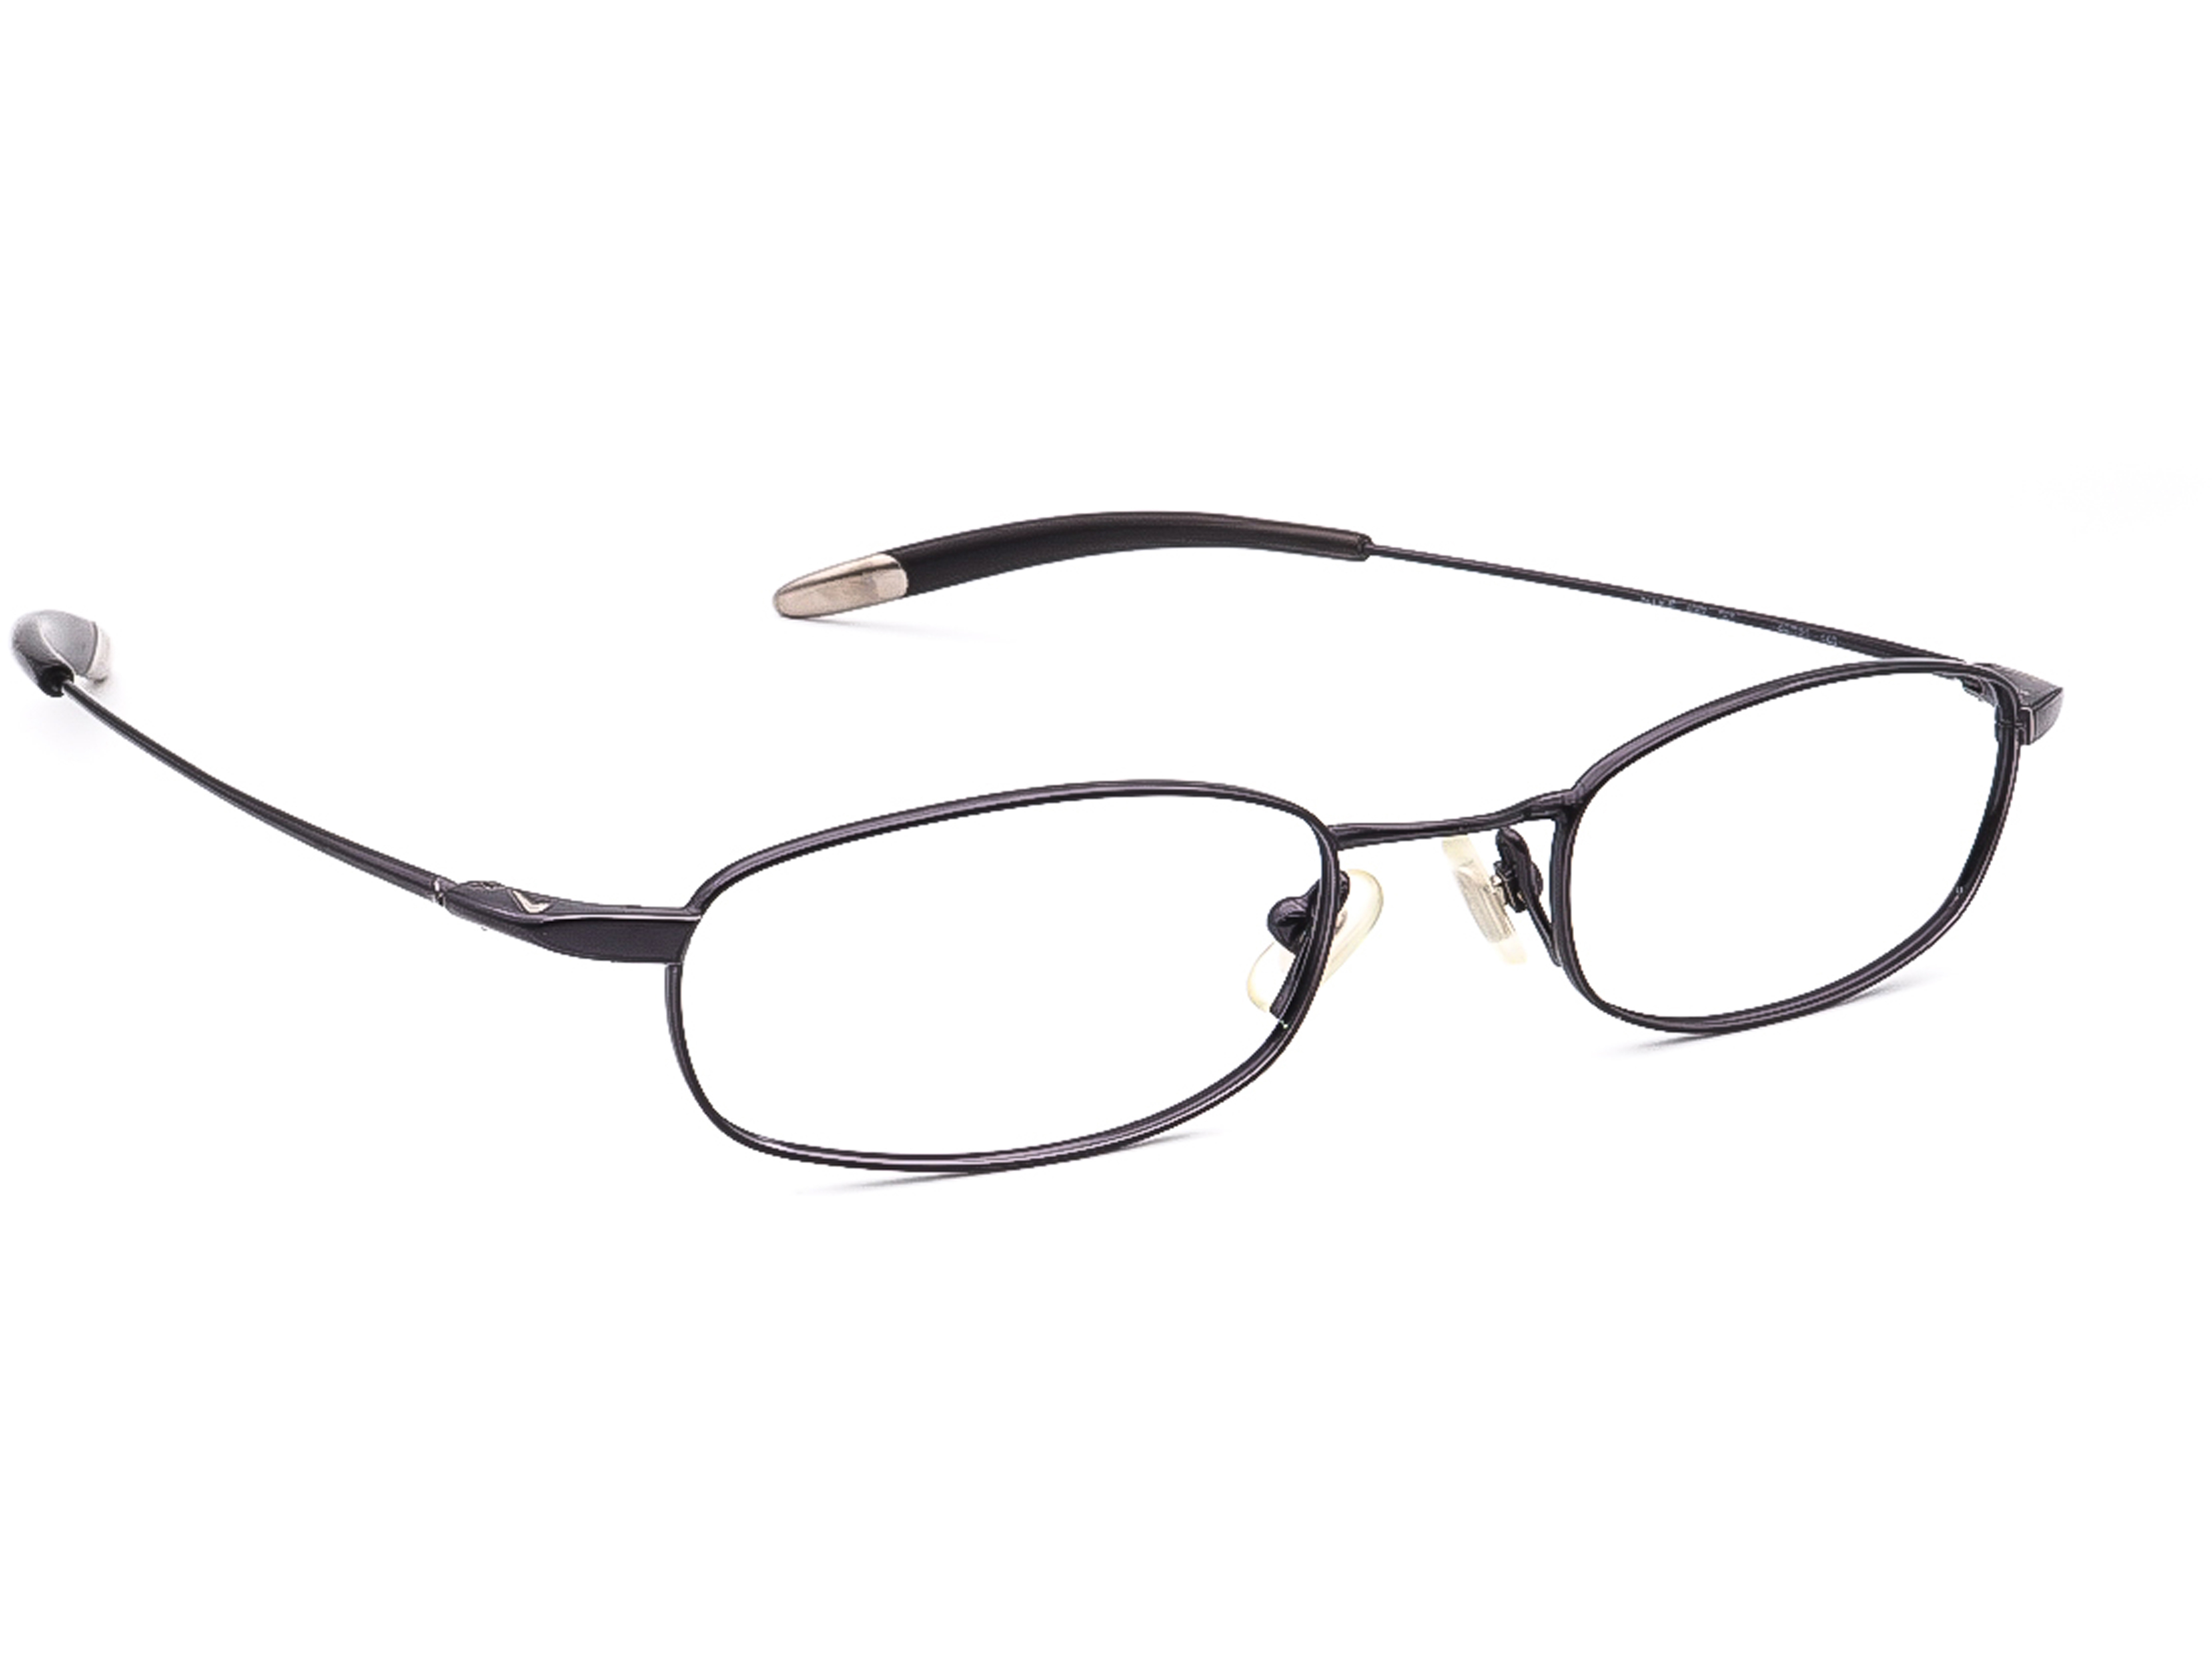 Nike With Flexon 4052 001 Eyeglasses